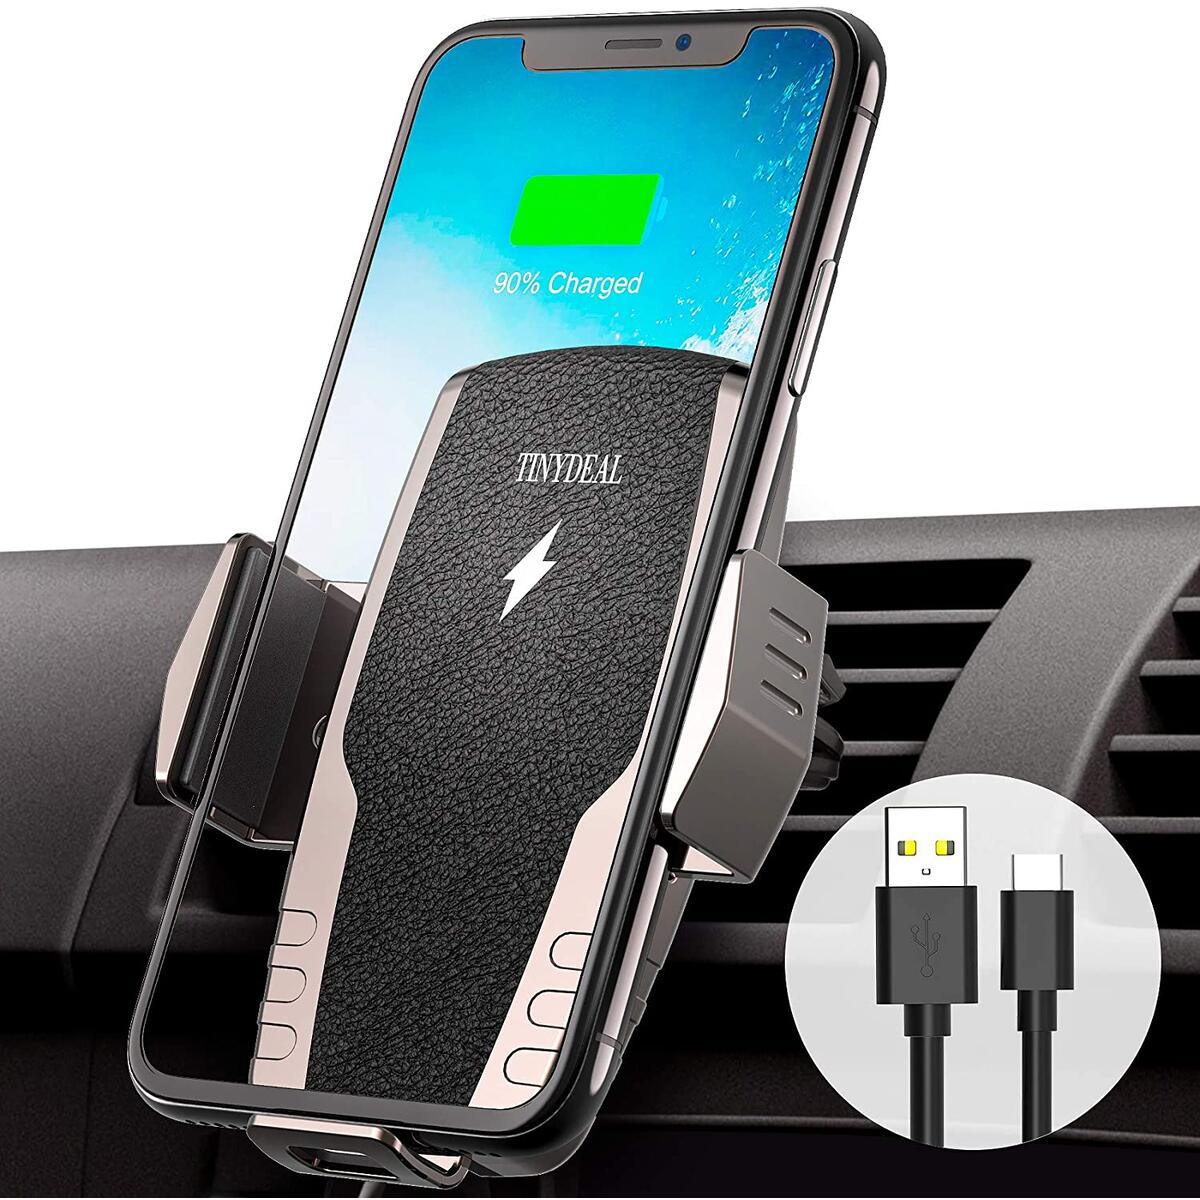 Wireless Car Charger Mount Auto Clamping, TinyDeal Max 15W Qi Fast Charging Air Vent Car Phone Holder Mount for iPhone 11 11 Pro Max Xs MAX/XS/XR/X/8/8+, Samsung S10+ S10 S9+ S9 S8+ S8 Note 9